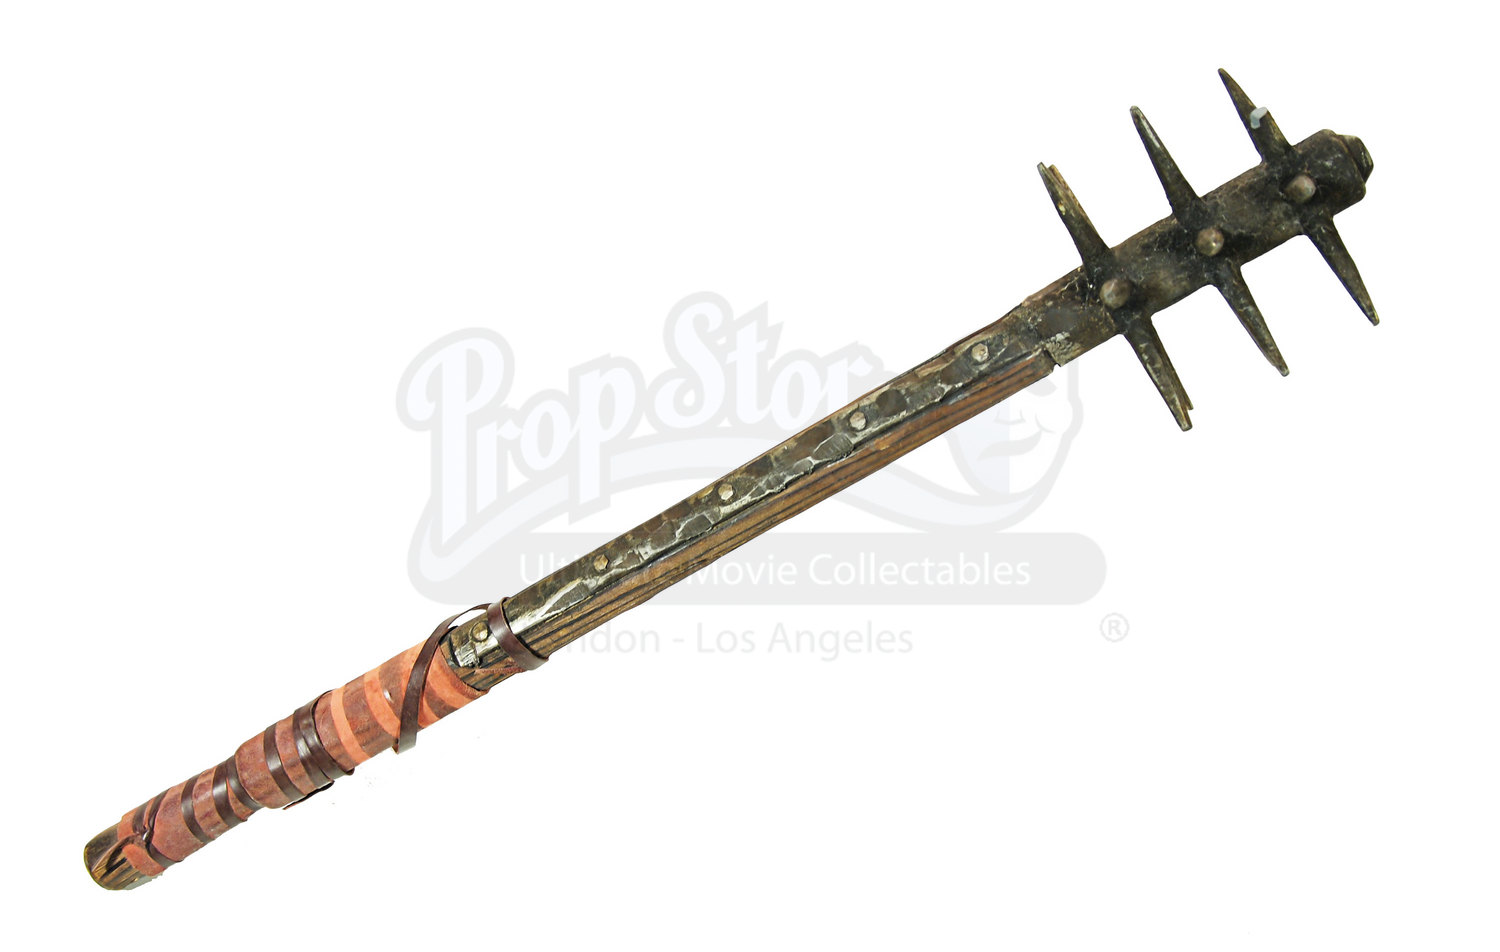 Spiked Club Weapon Prop Store Ultimate Movie Collectables